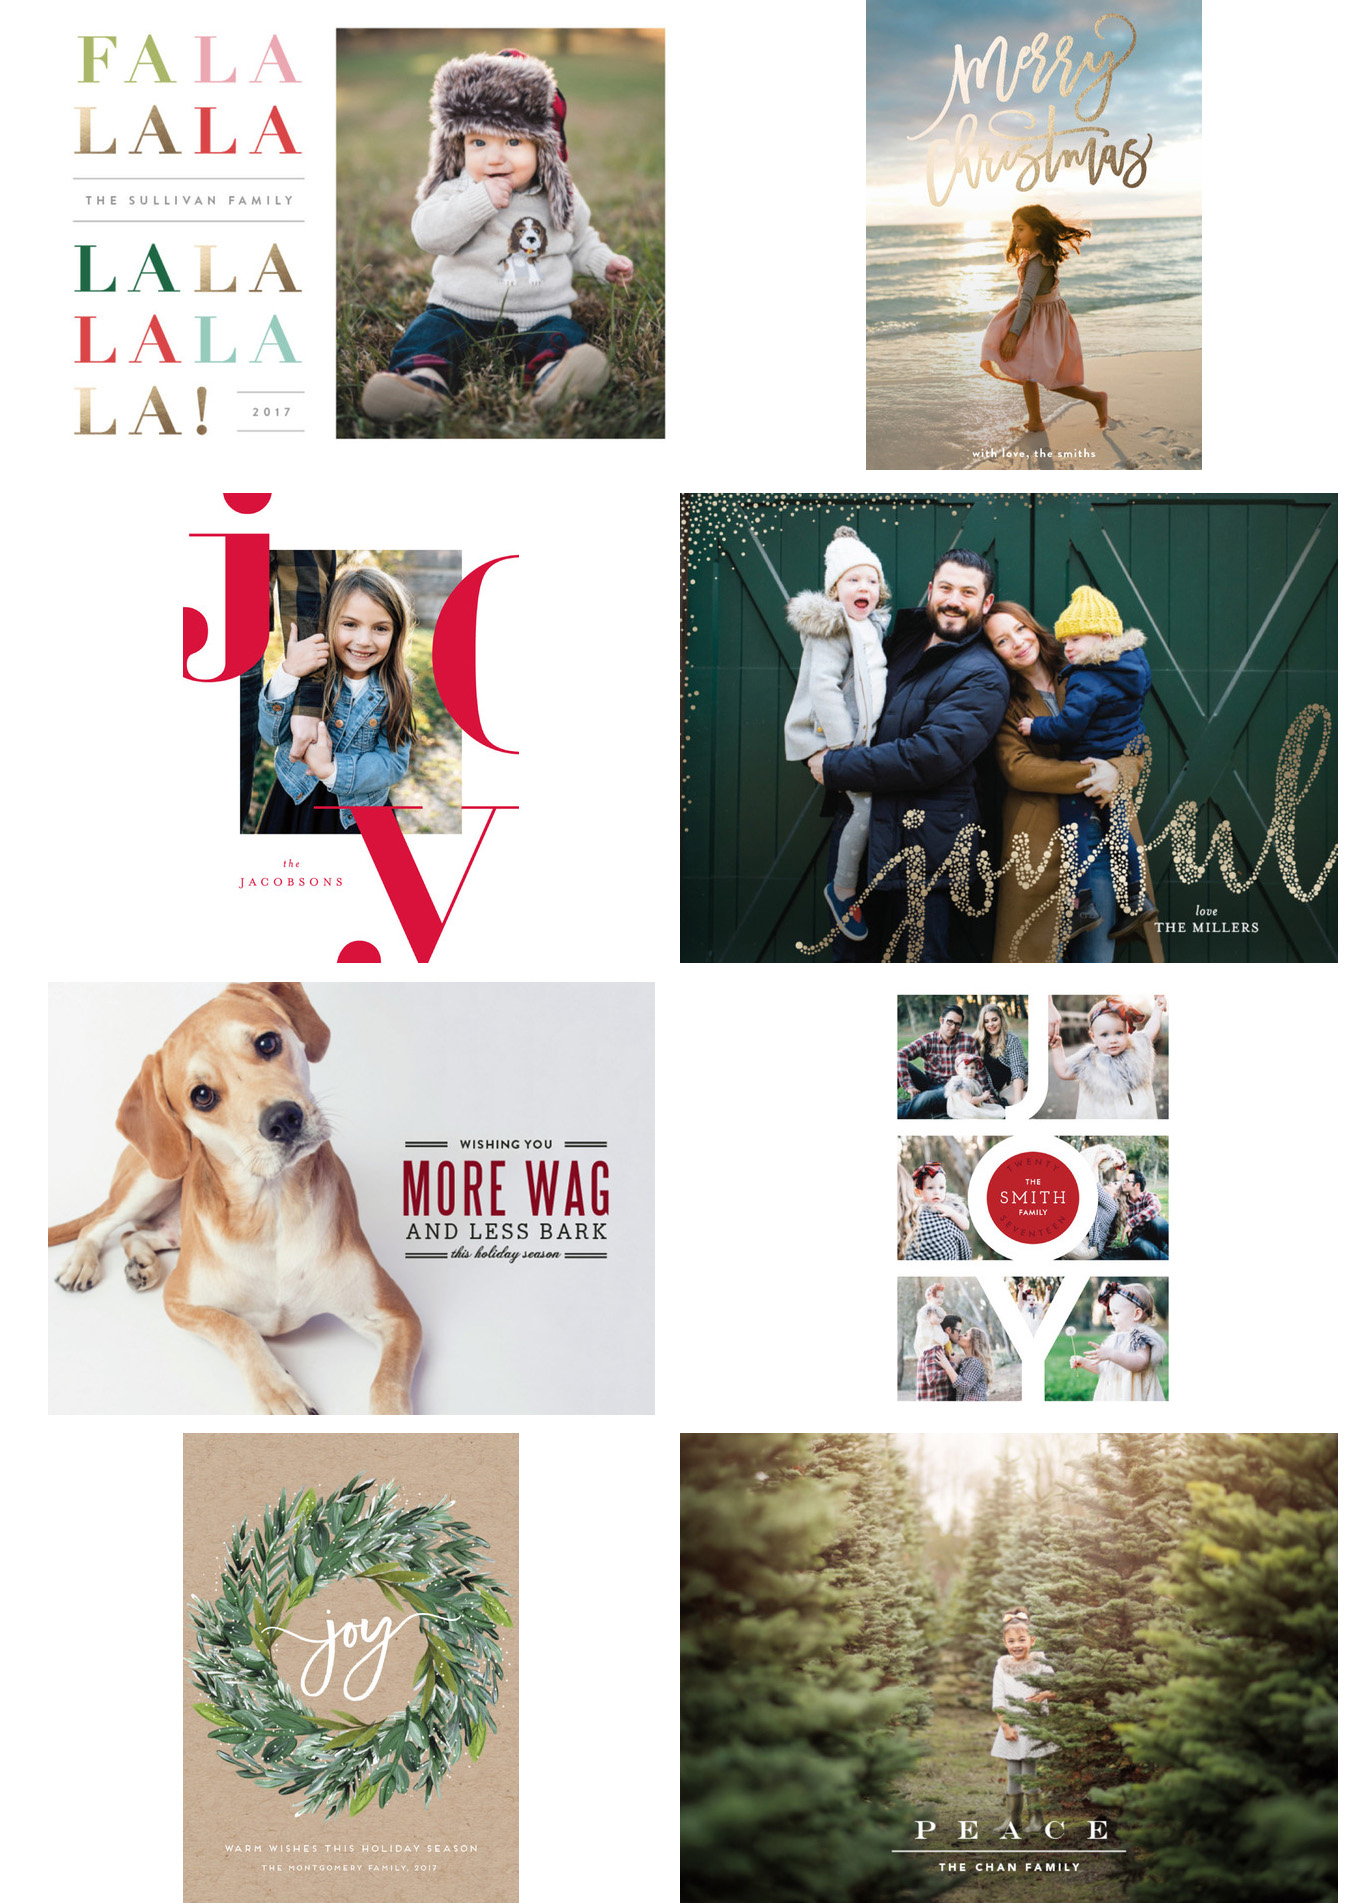 Ridgely Brode is hoping to get her Holiday Cards ordered and shares her source for ordering all kinds of special cards on her blog Ridgely's Radar.